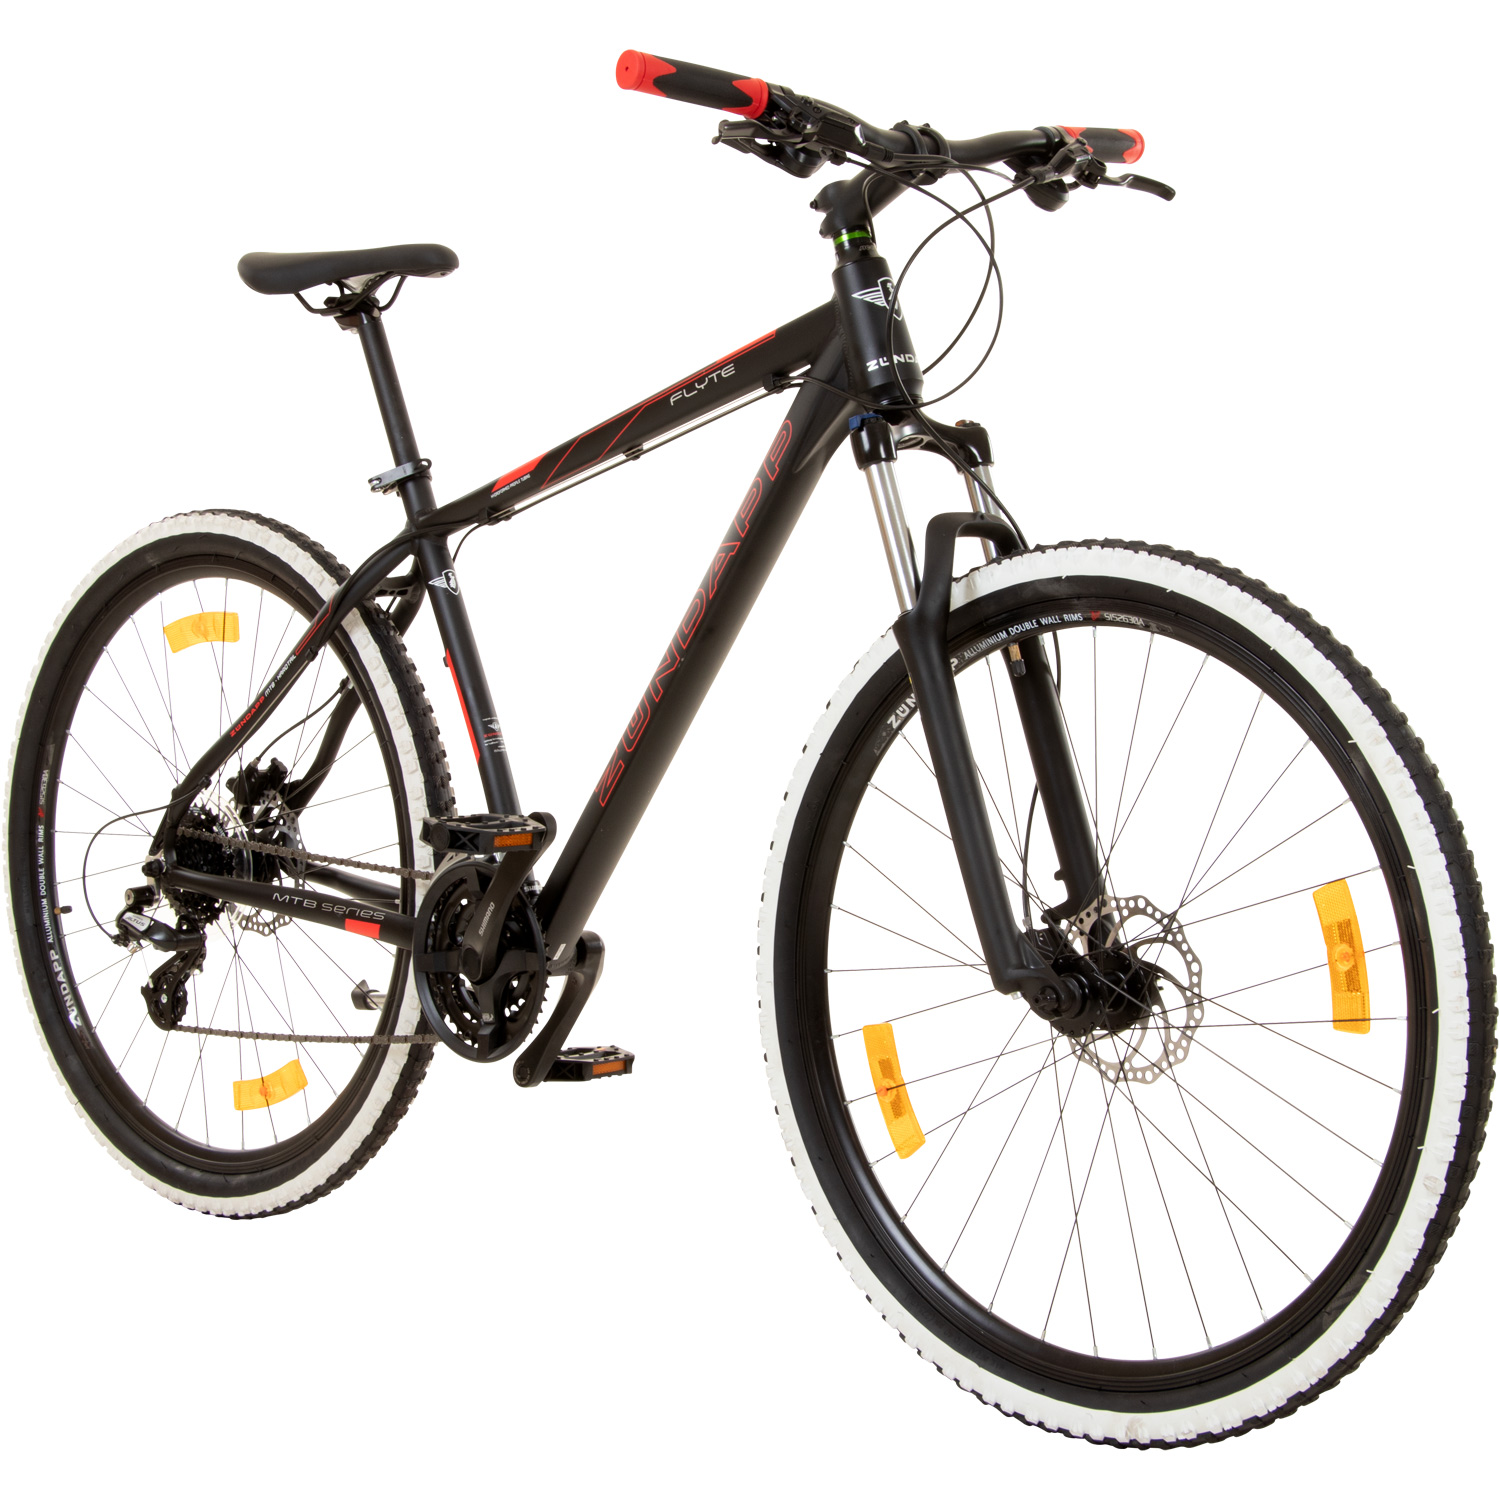 z ndapp primal flyte 29 zoll mtb hardtail mountainbike. Black Bedroom Furniture Sets. Home Design Ideas